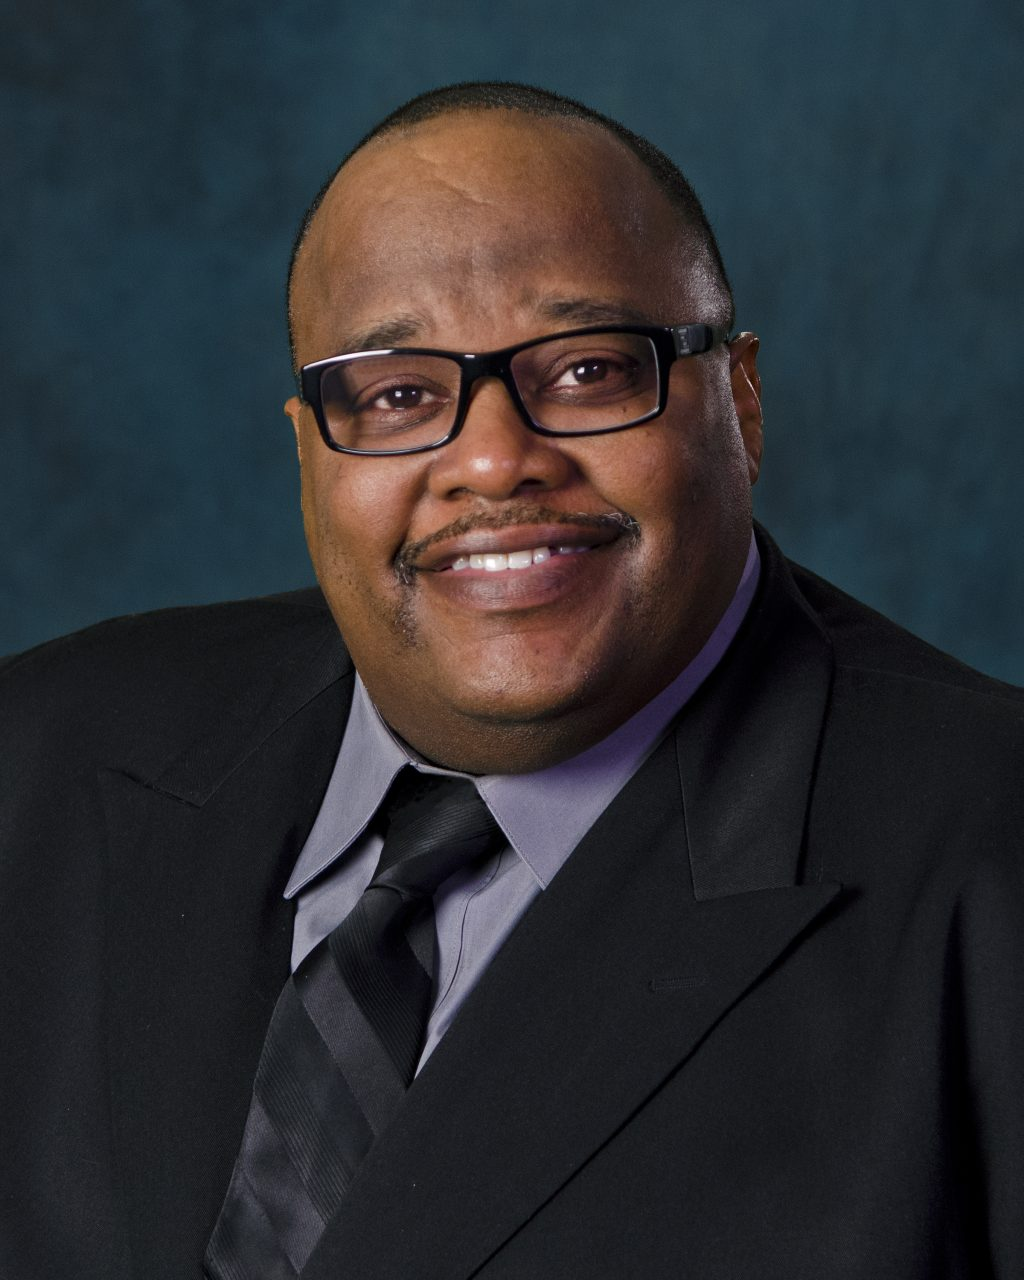 EXCLUSIVE: Rory Gamble Named First African American President of the UAW